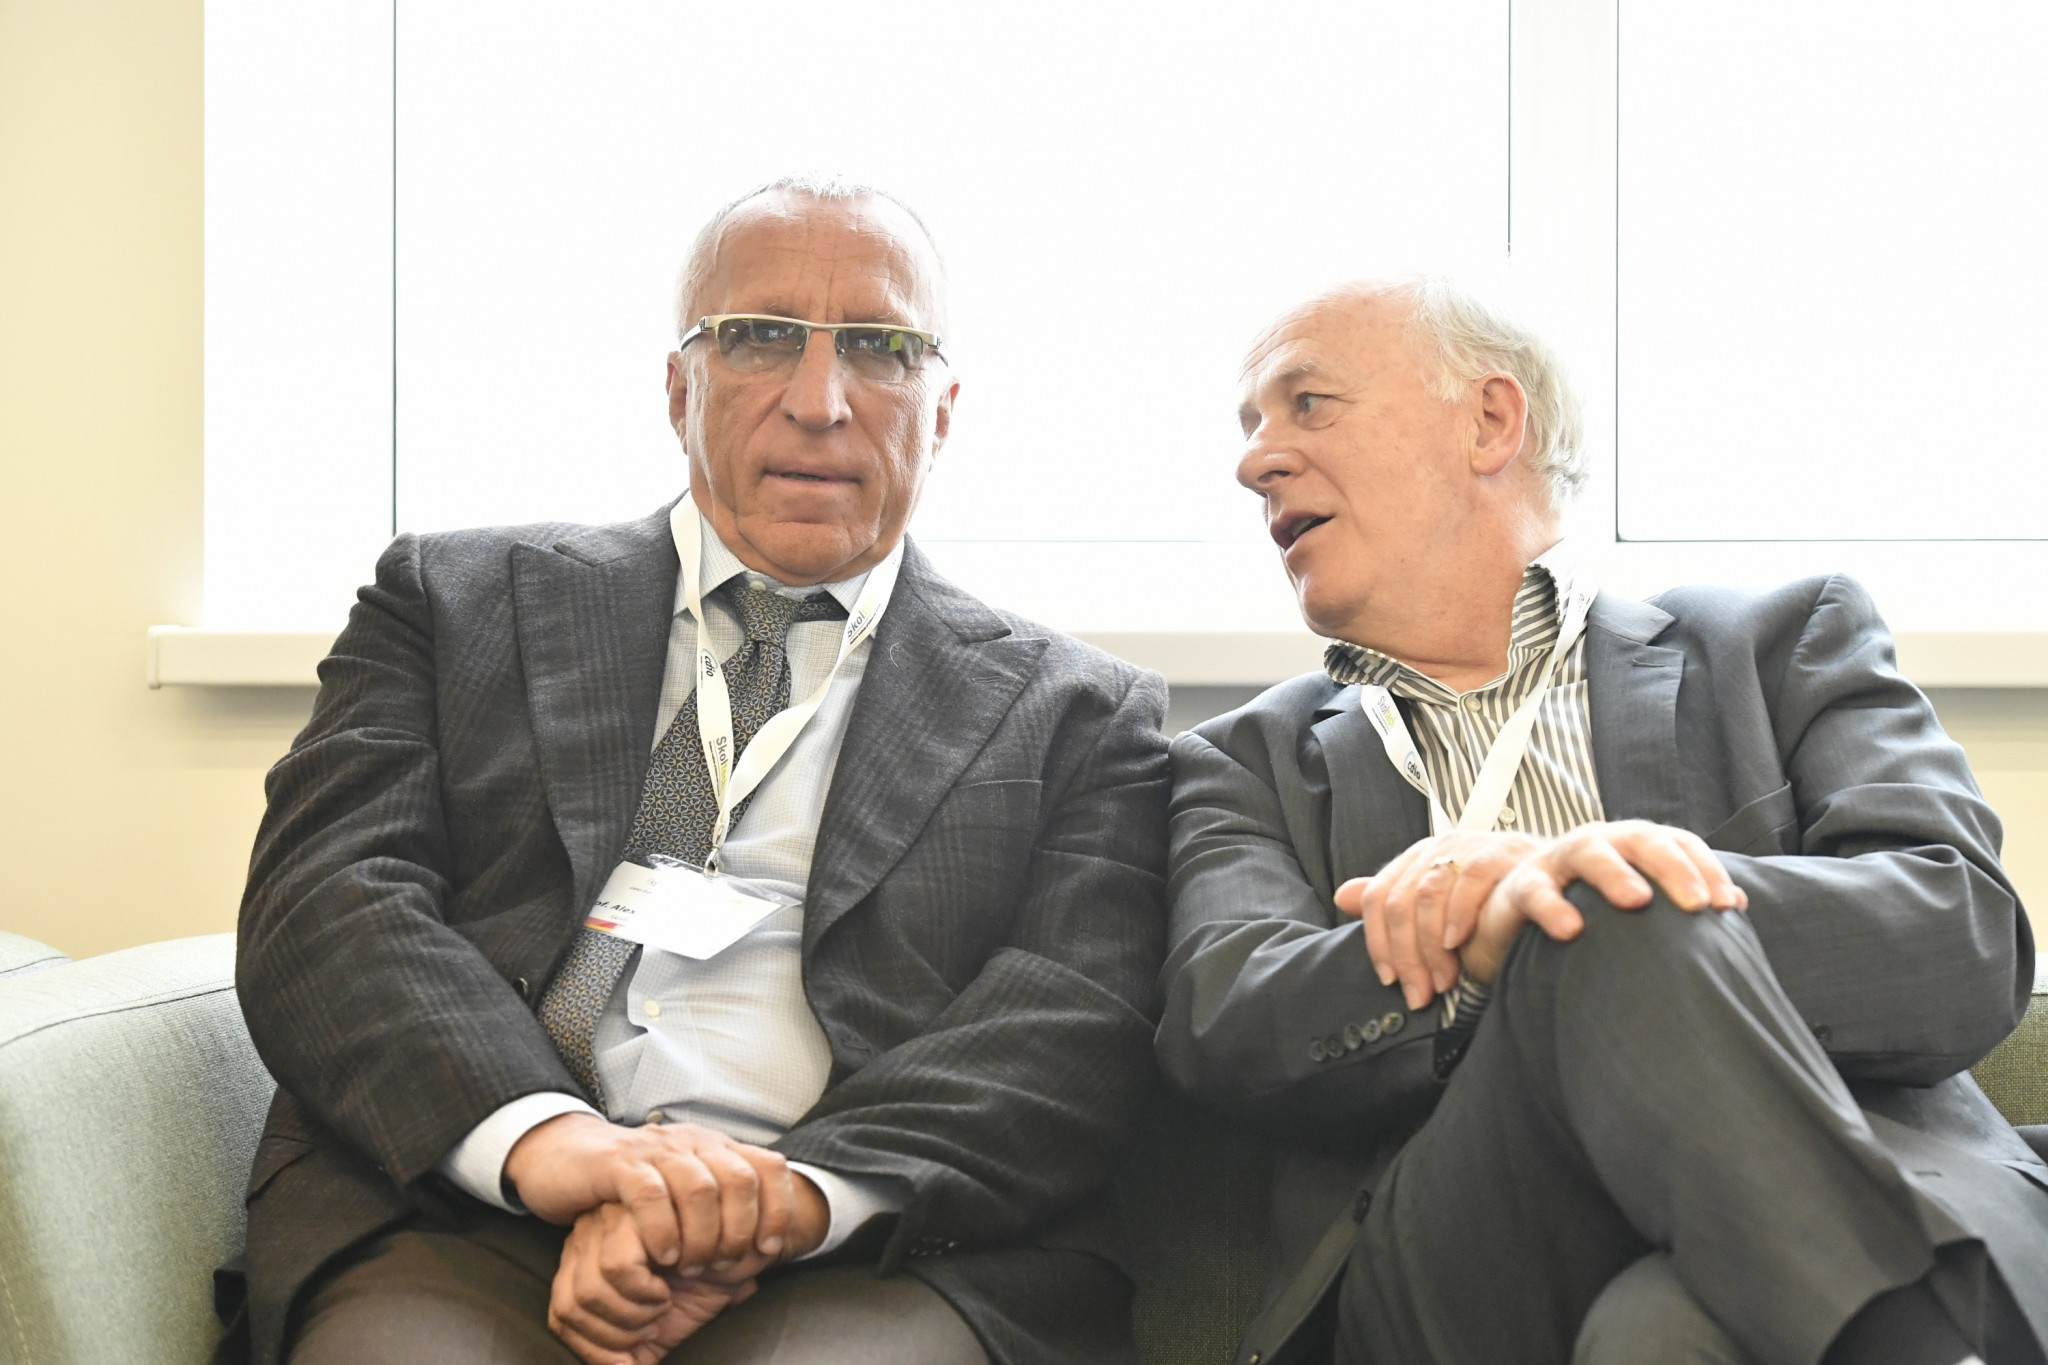 Skoltech President Alexander Kuleshov and Professor Clement Fortin share a chat on the sidelines of the CDIO meeting. Photo: Skoltech.